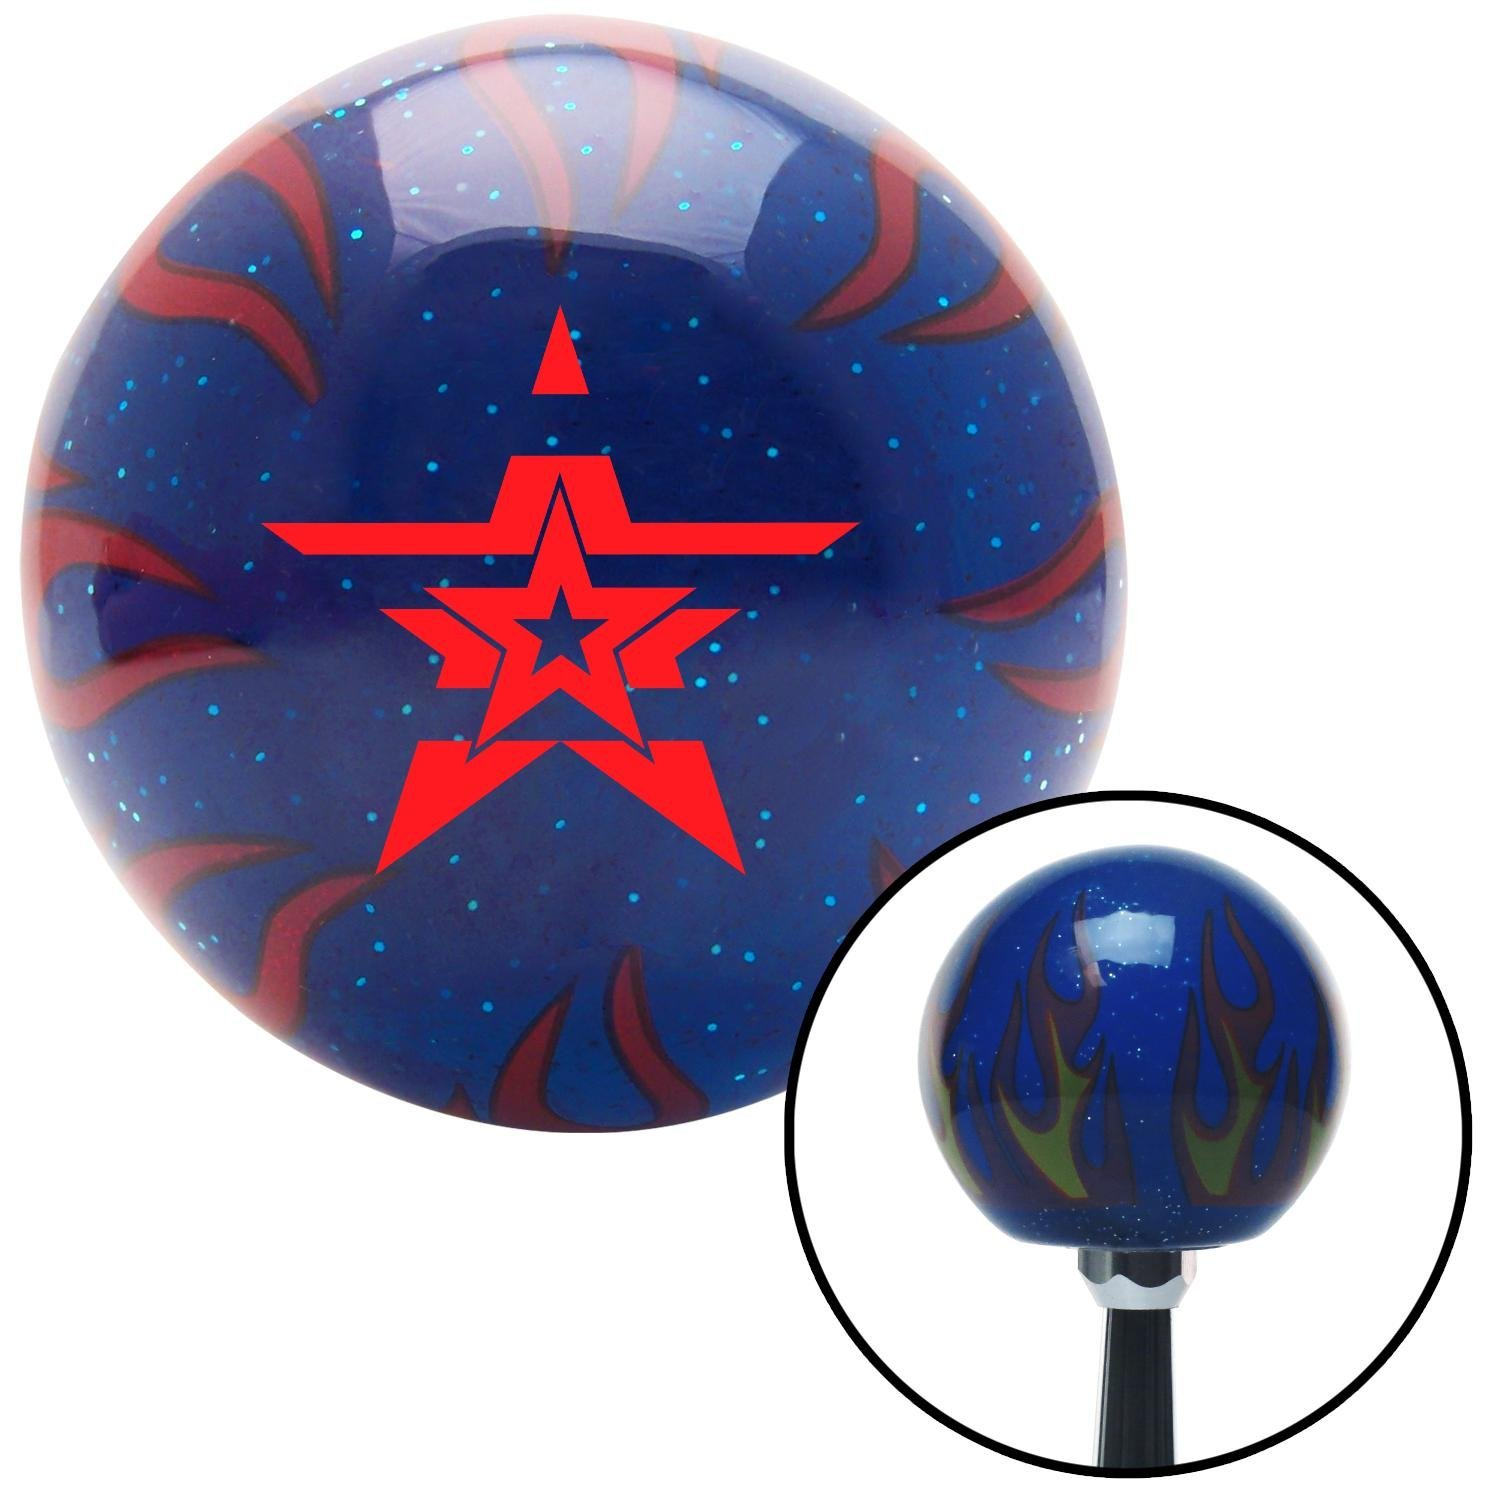 American Shifter 250165 Blue Flame Metal Flake Shift Knob with M16 x 1.5 Insert Red Stars with Stripes